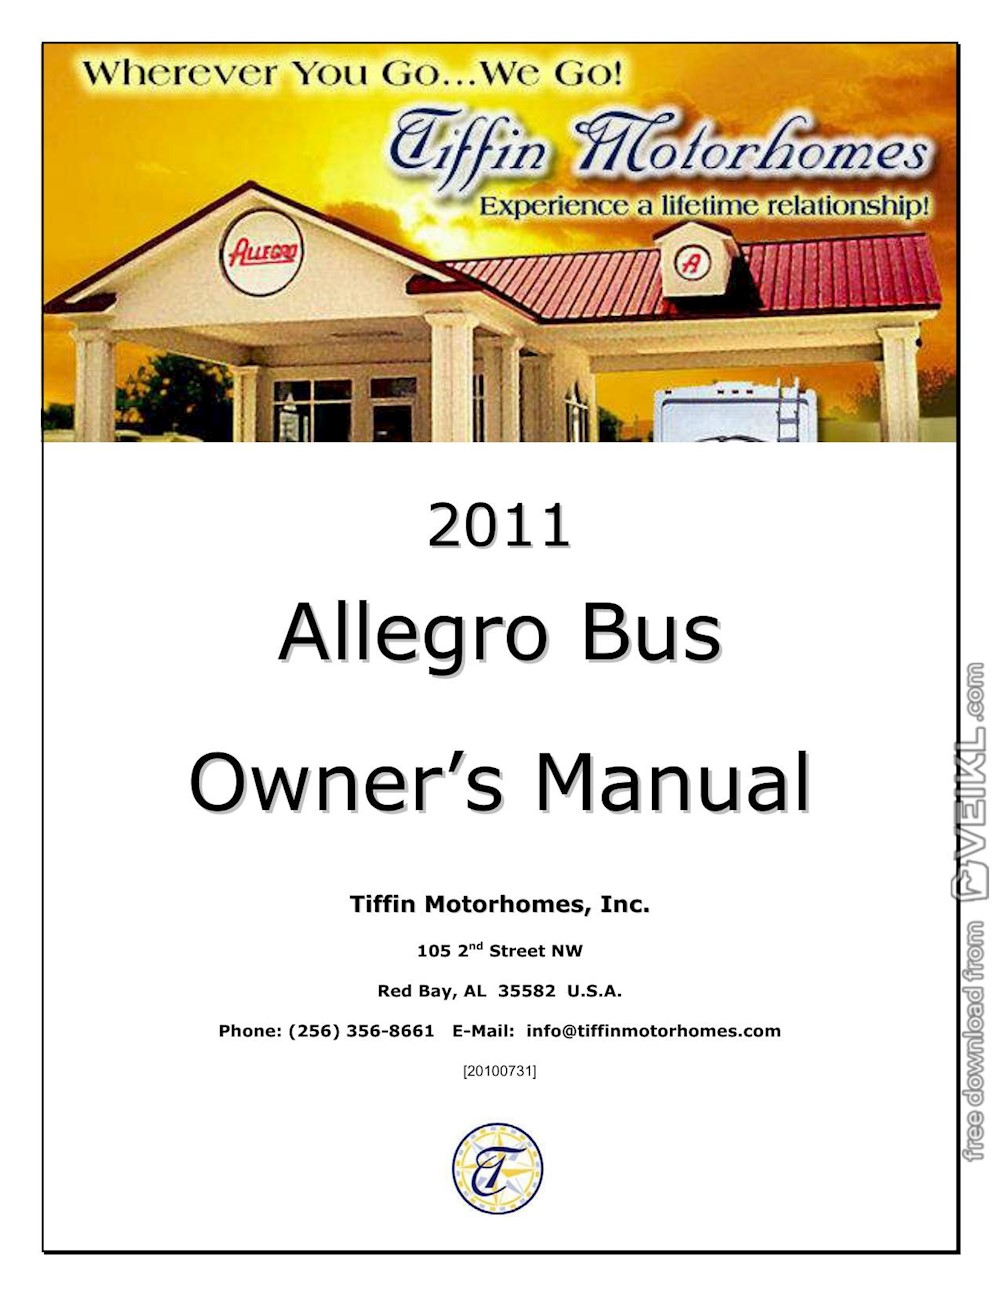 Tiffin Motorhomes Allegro Bus Owner's manual 2011 EN